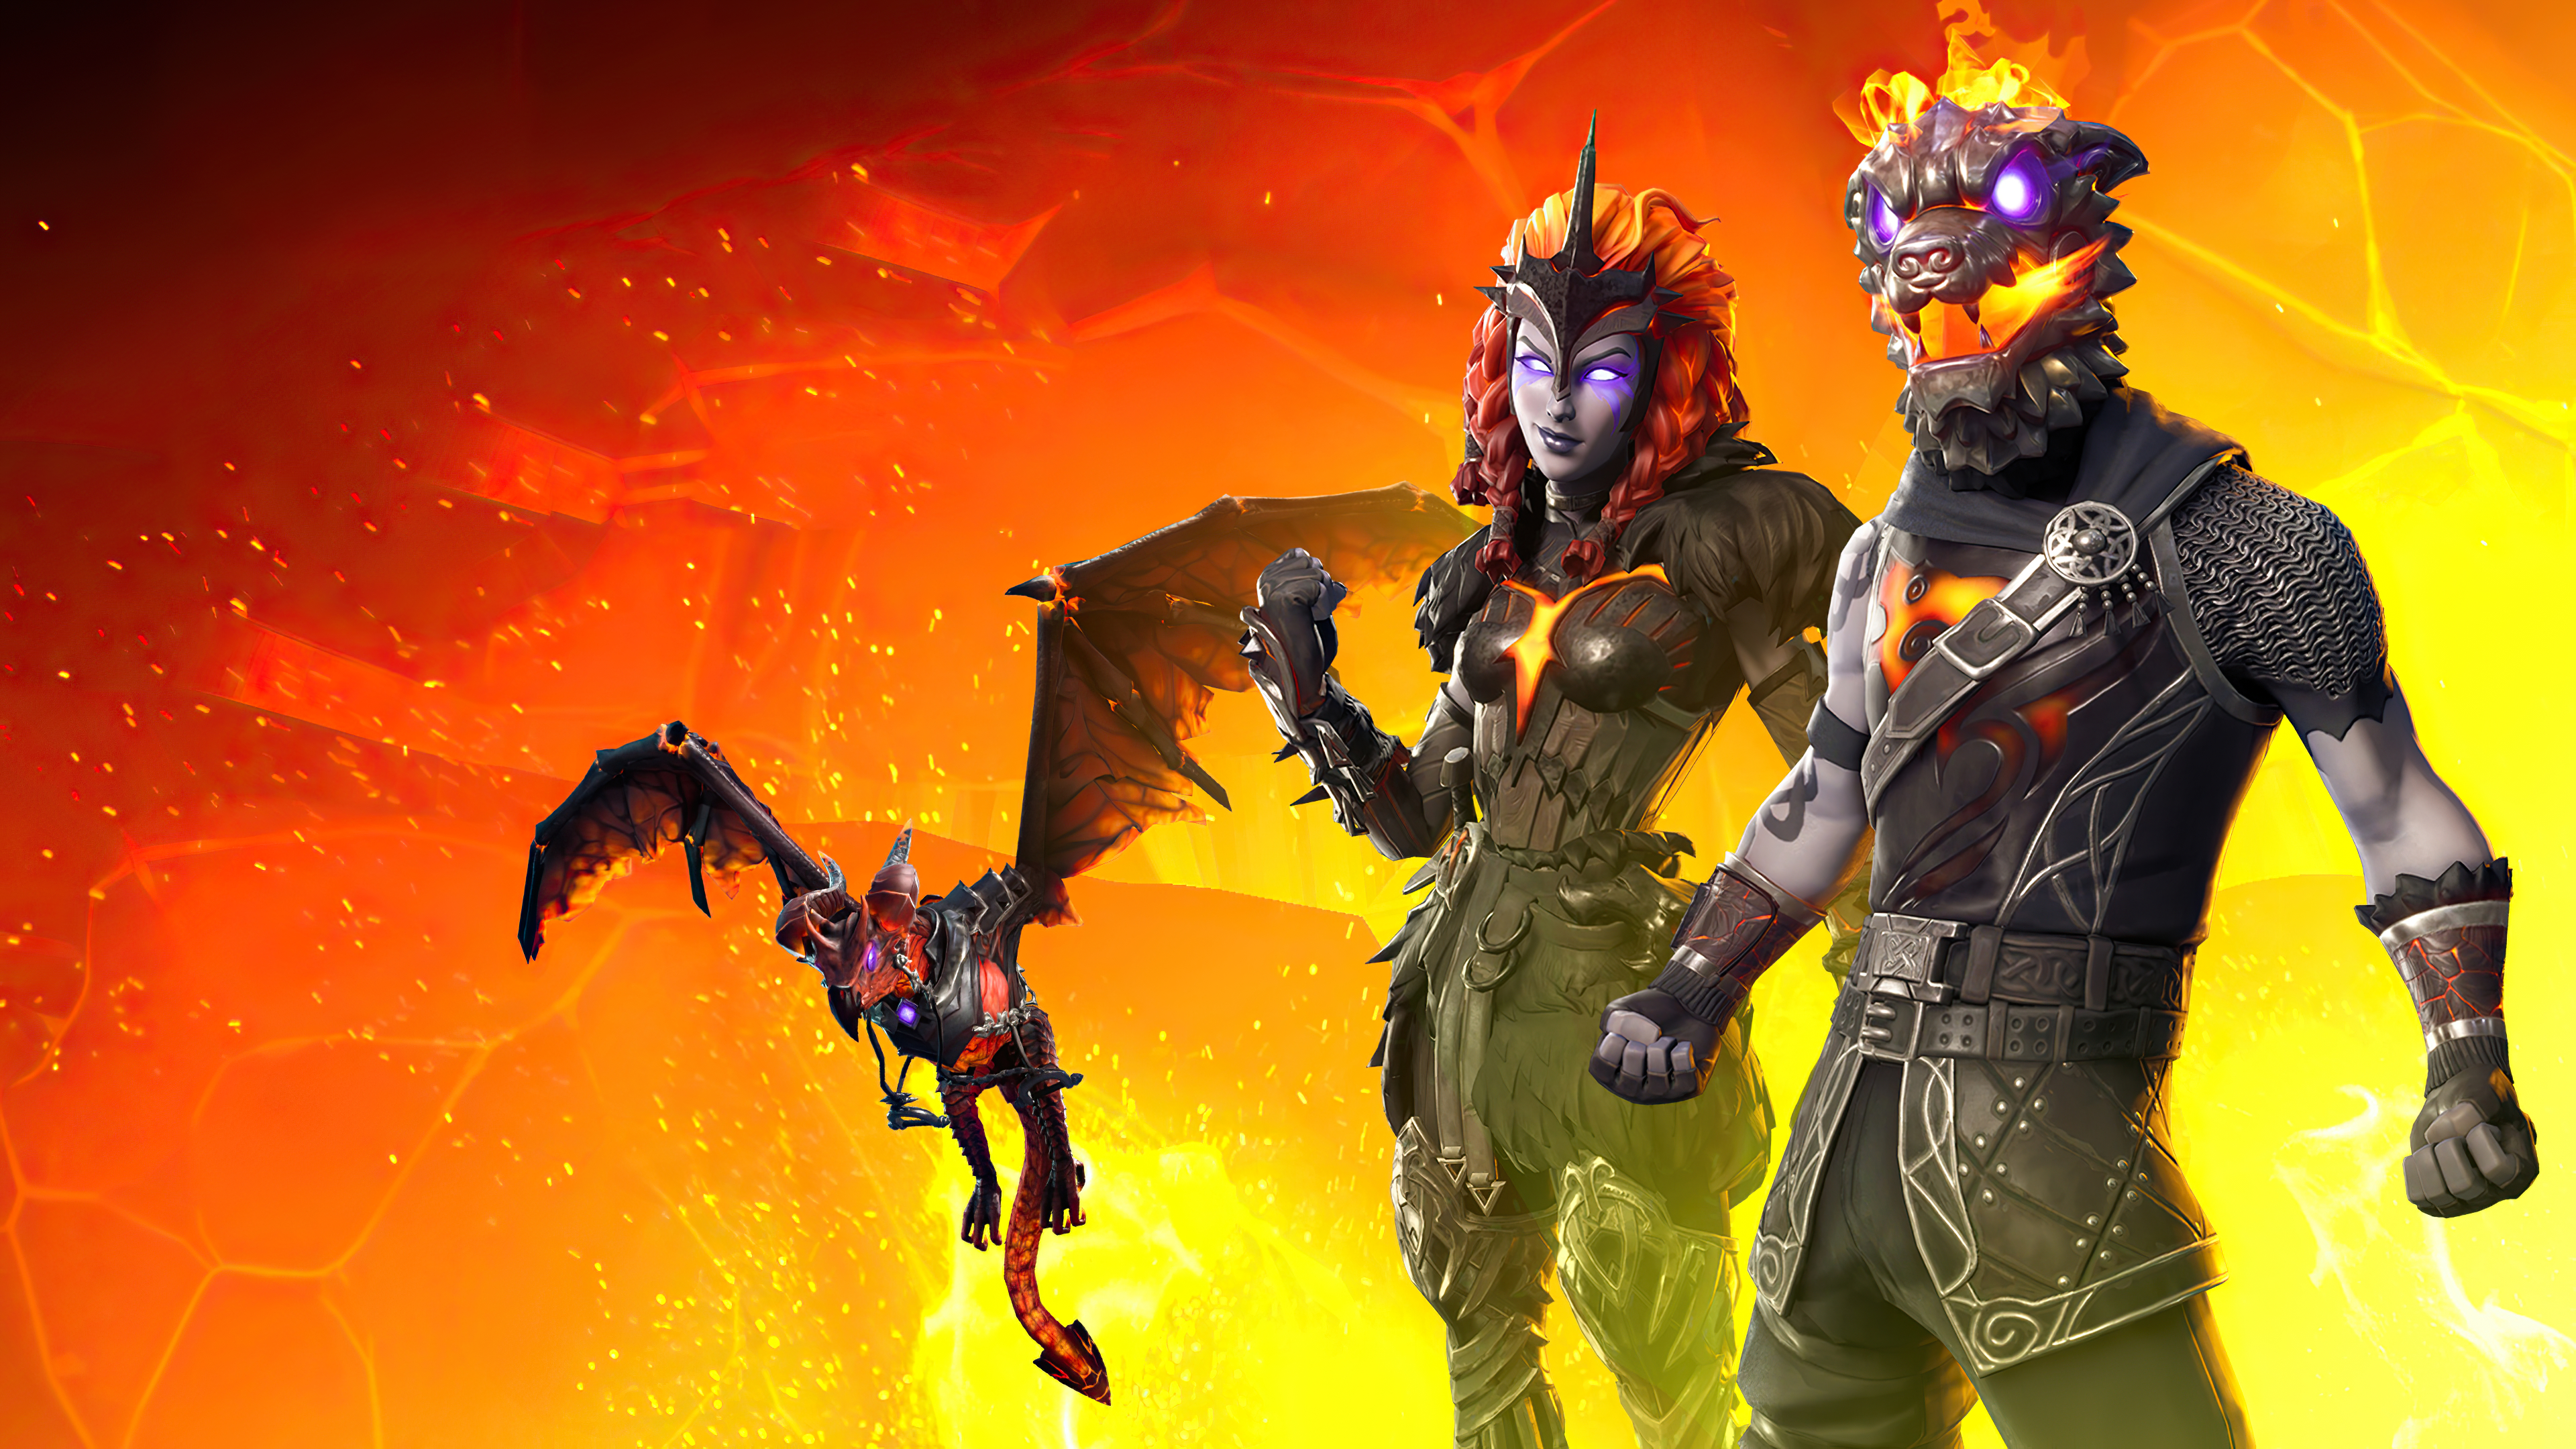 Fortnite New Season 2020 Hd Games 4k Wallpapers Images Backgrounds Photos And Pictures